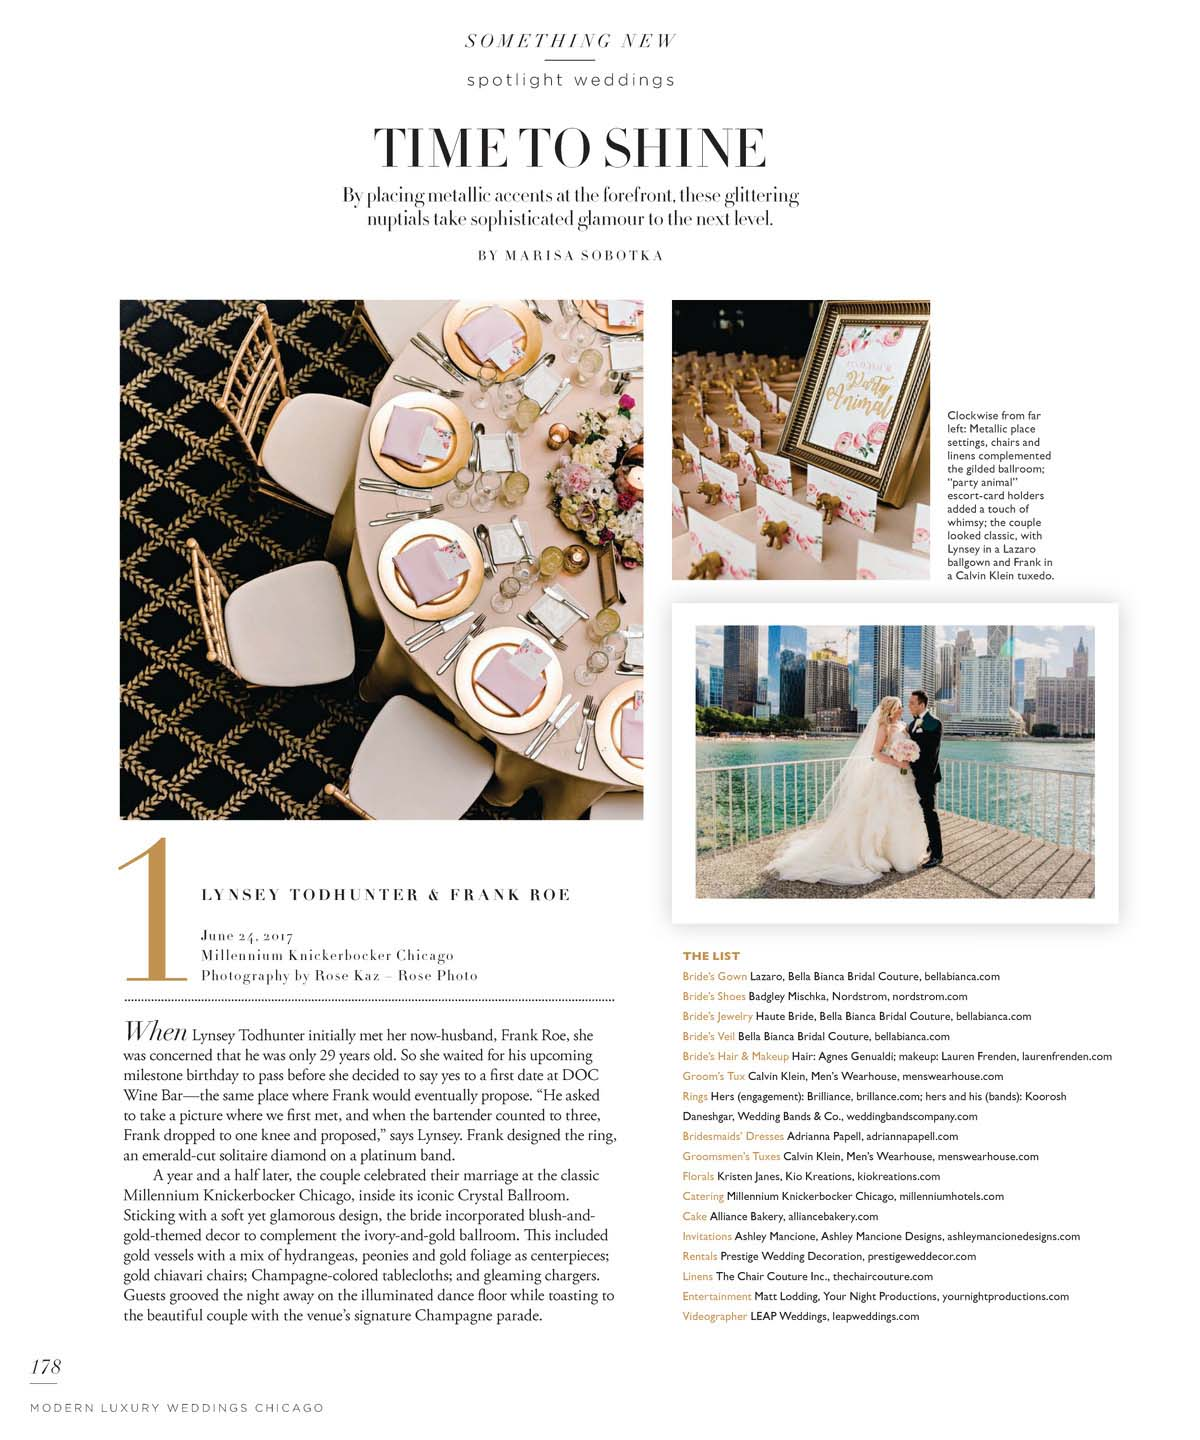 Knickerbocker Wedding Luxury WEDDINGS Photography Chicago - SS 2018 Issue - Rose Photo Complete Coverage-8.jpg